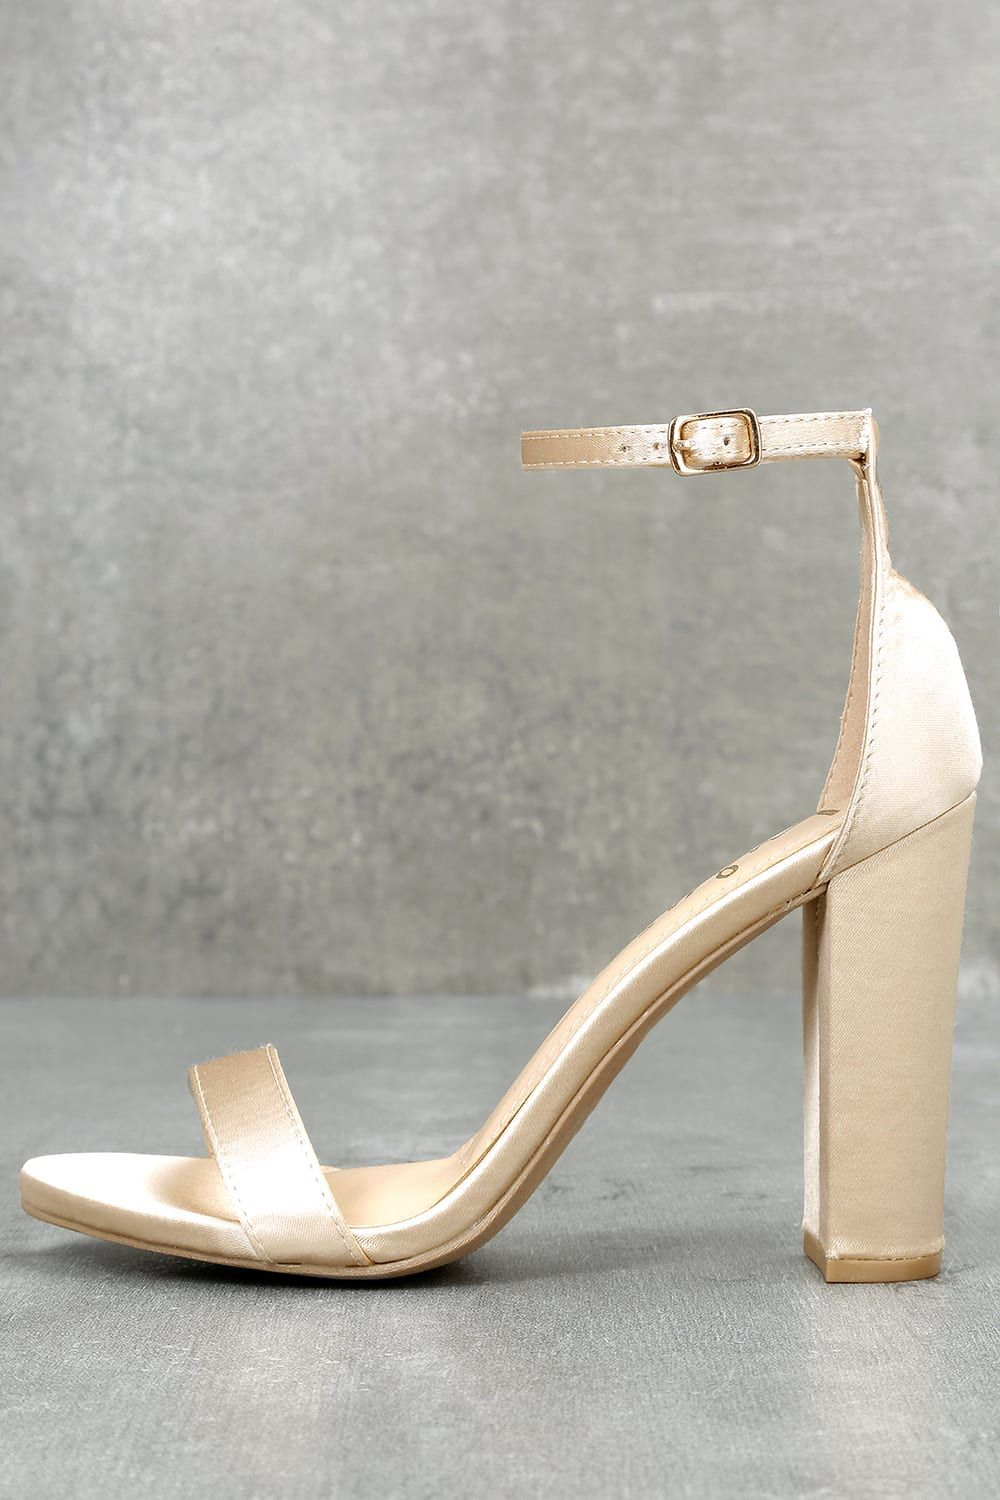 Taylor Champagne Satin Ankle Strap Heels In 2019 Ankle